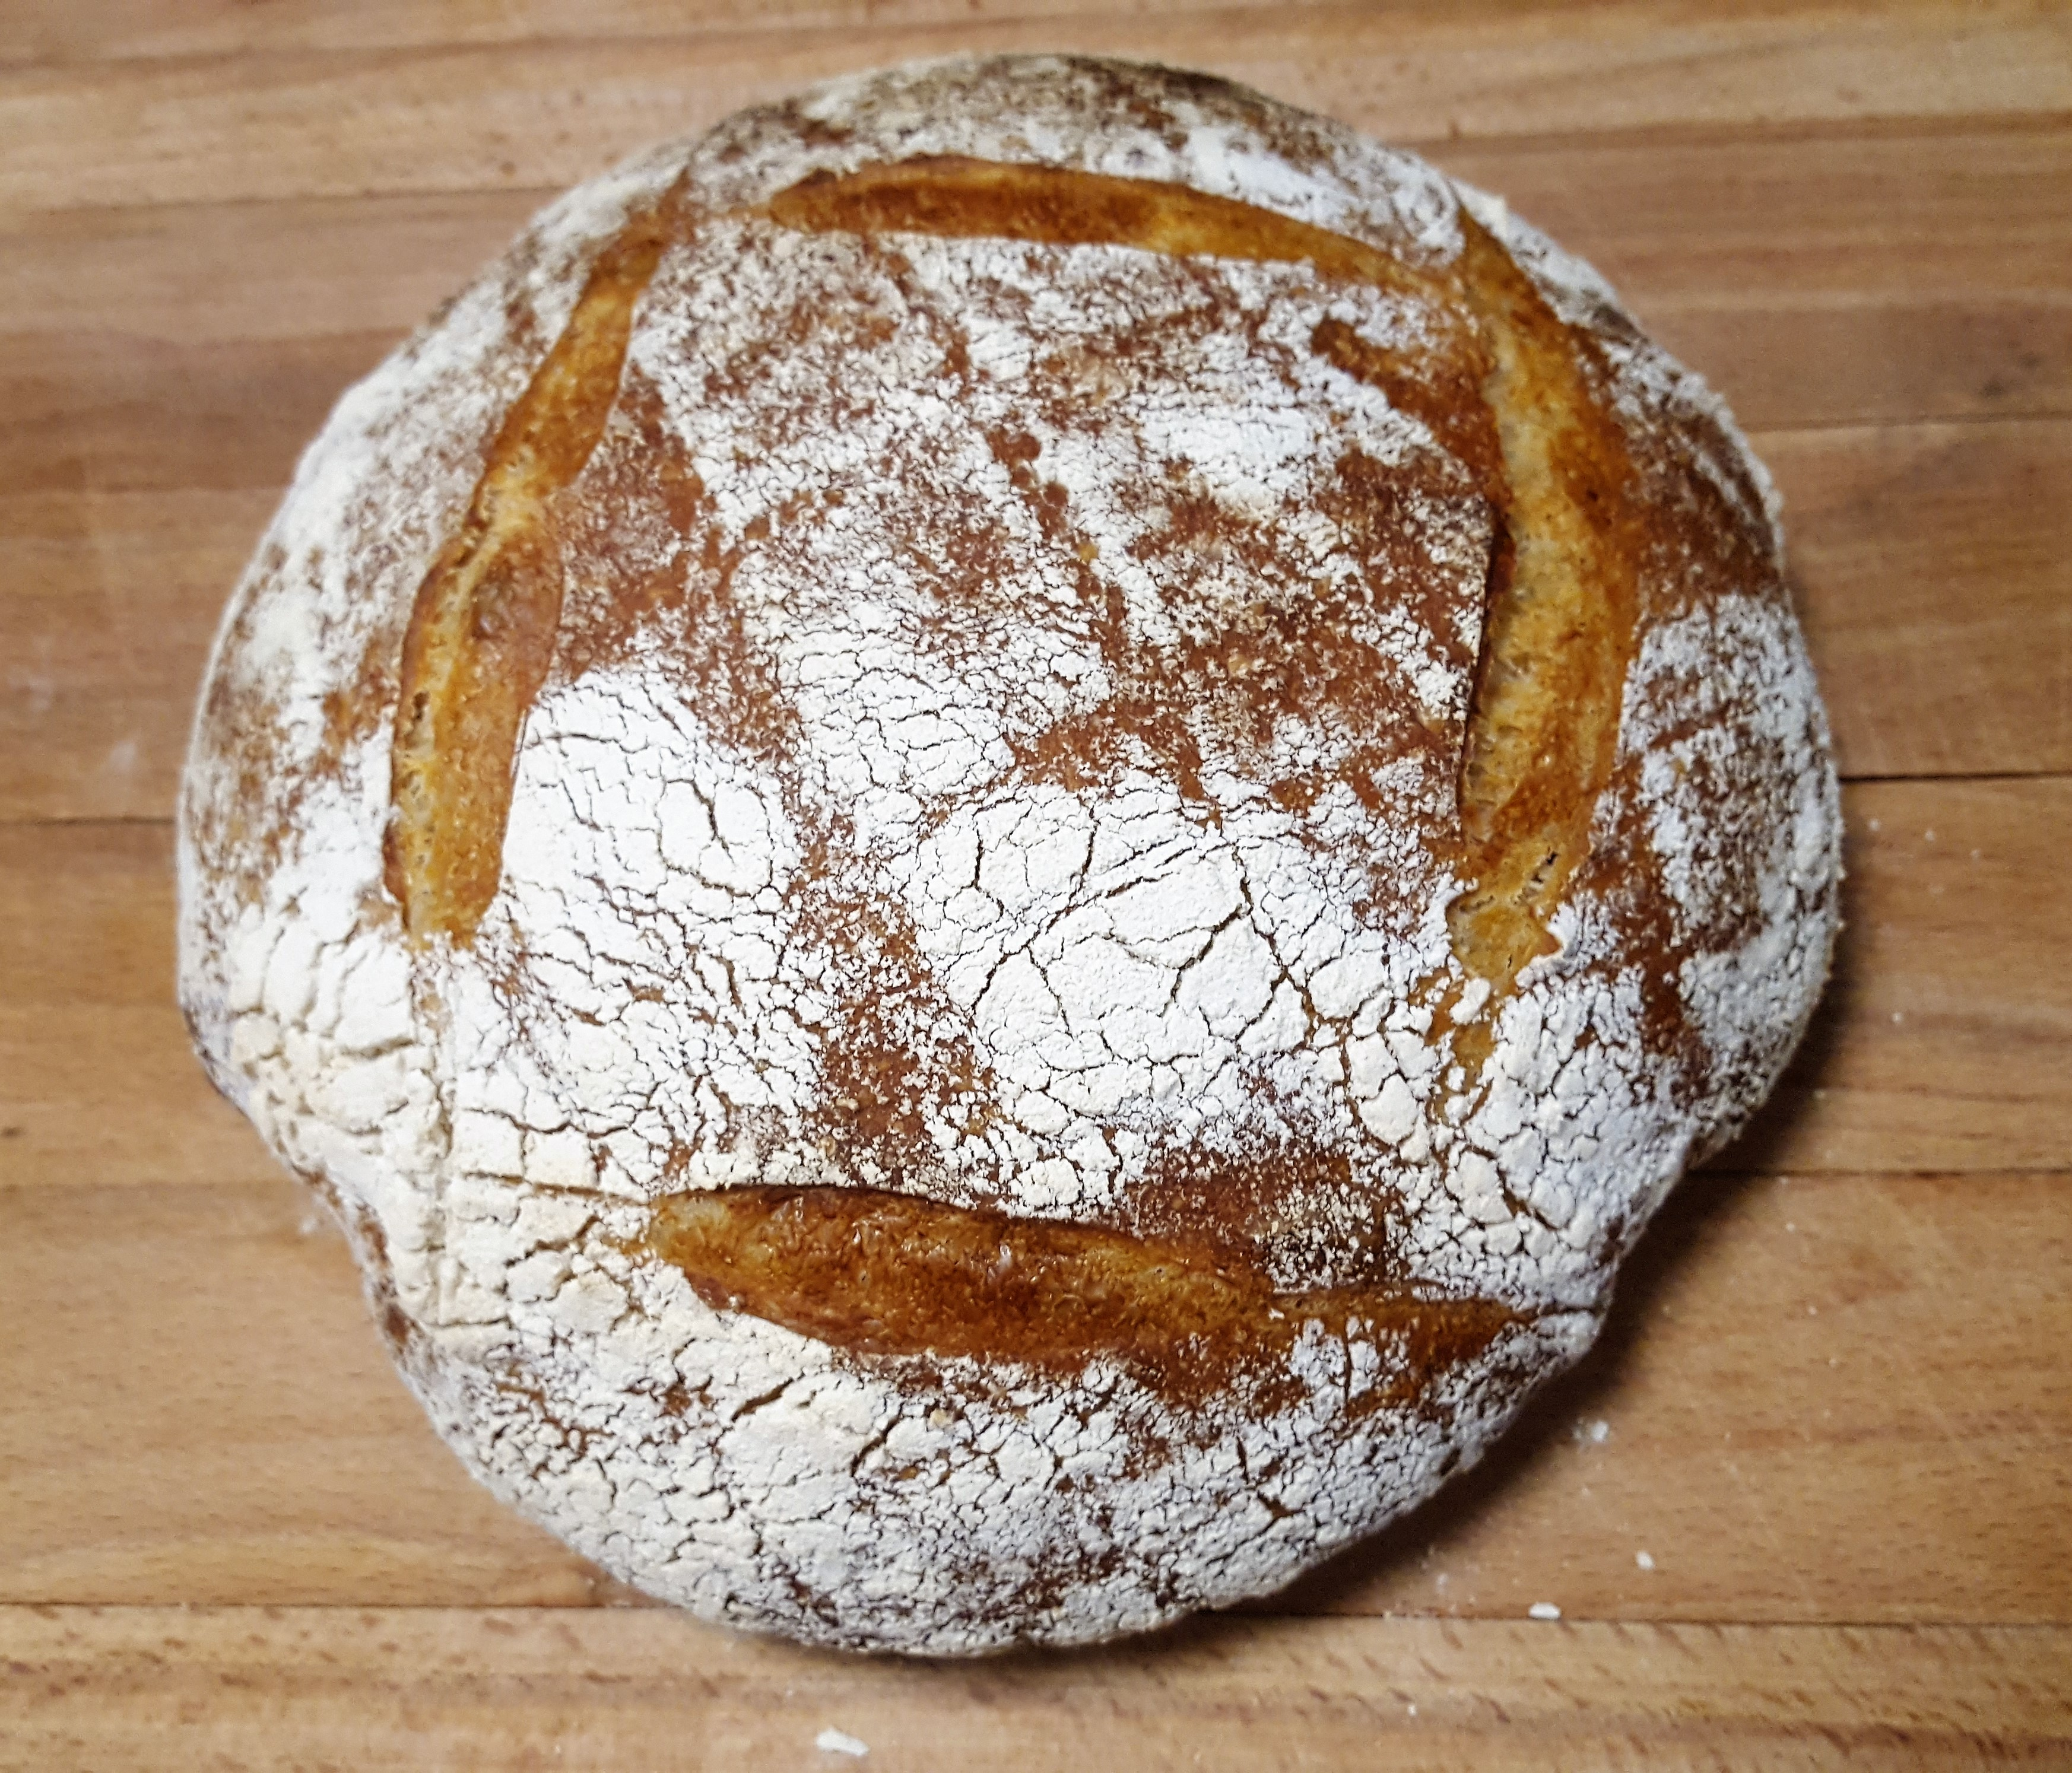 My first ever homemade sourdough bread loaf!